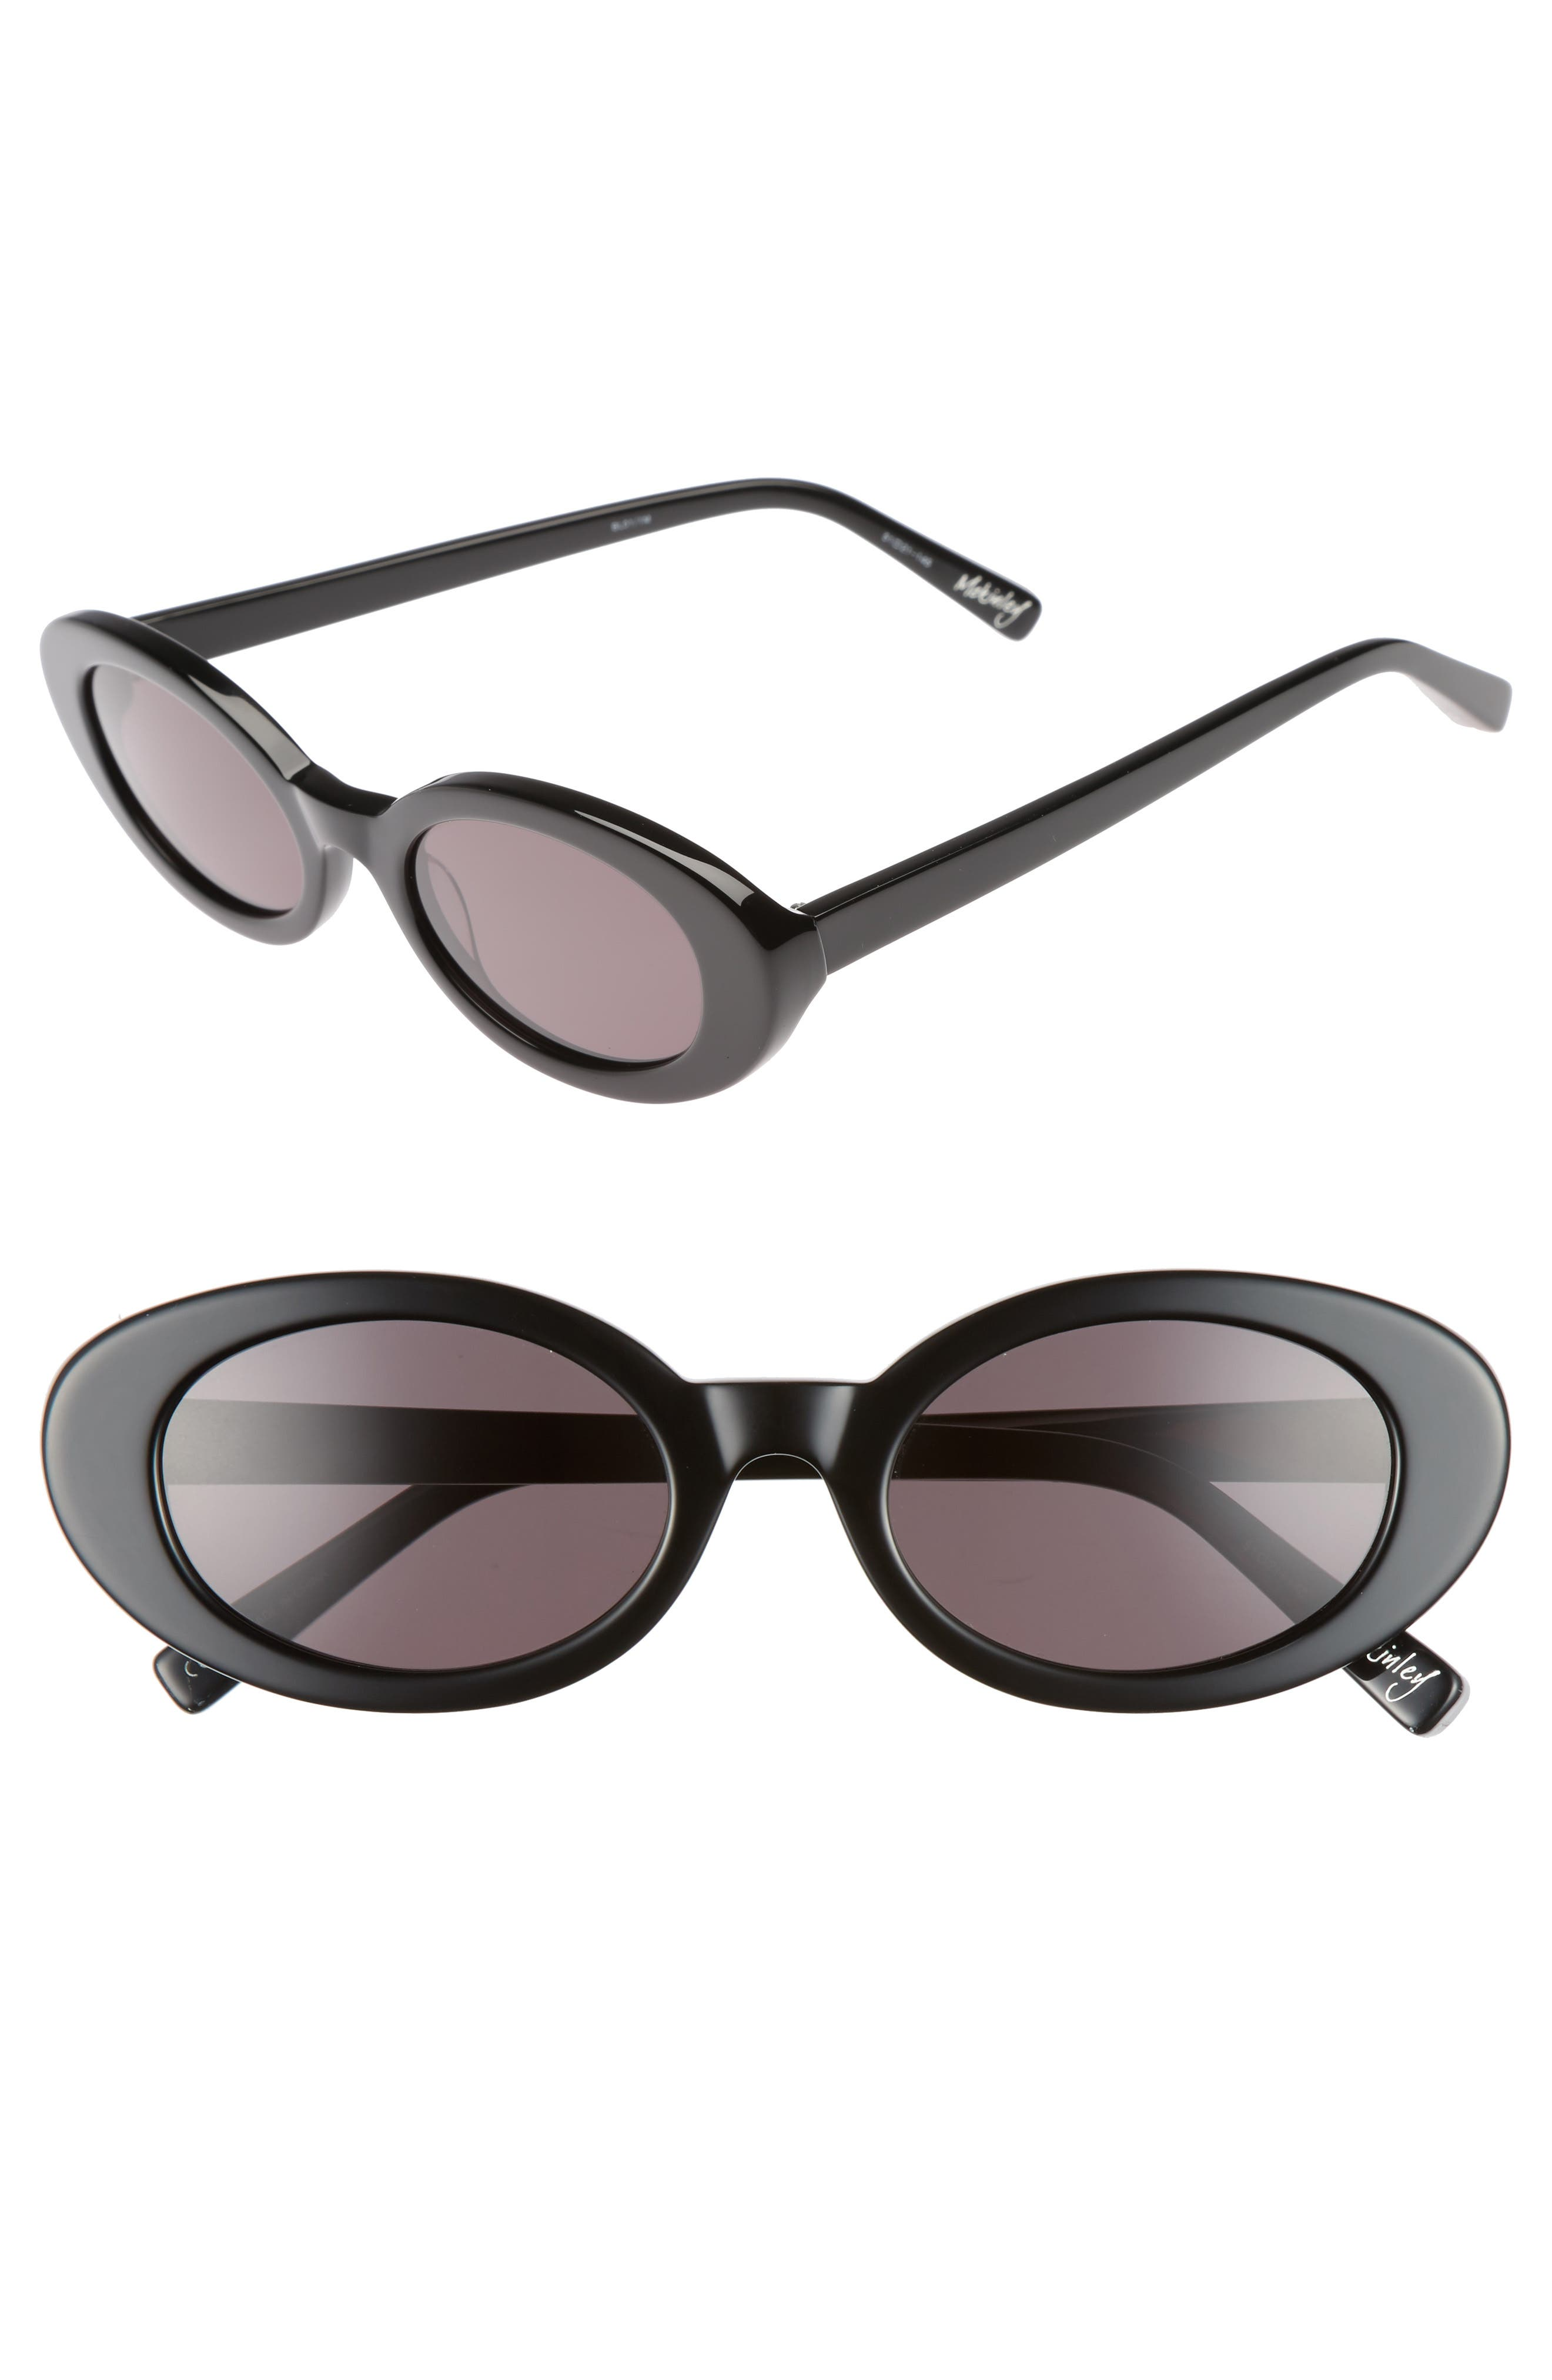 McKinely 51mm Oval Sunglasses,                         Main,                         color, 001